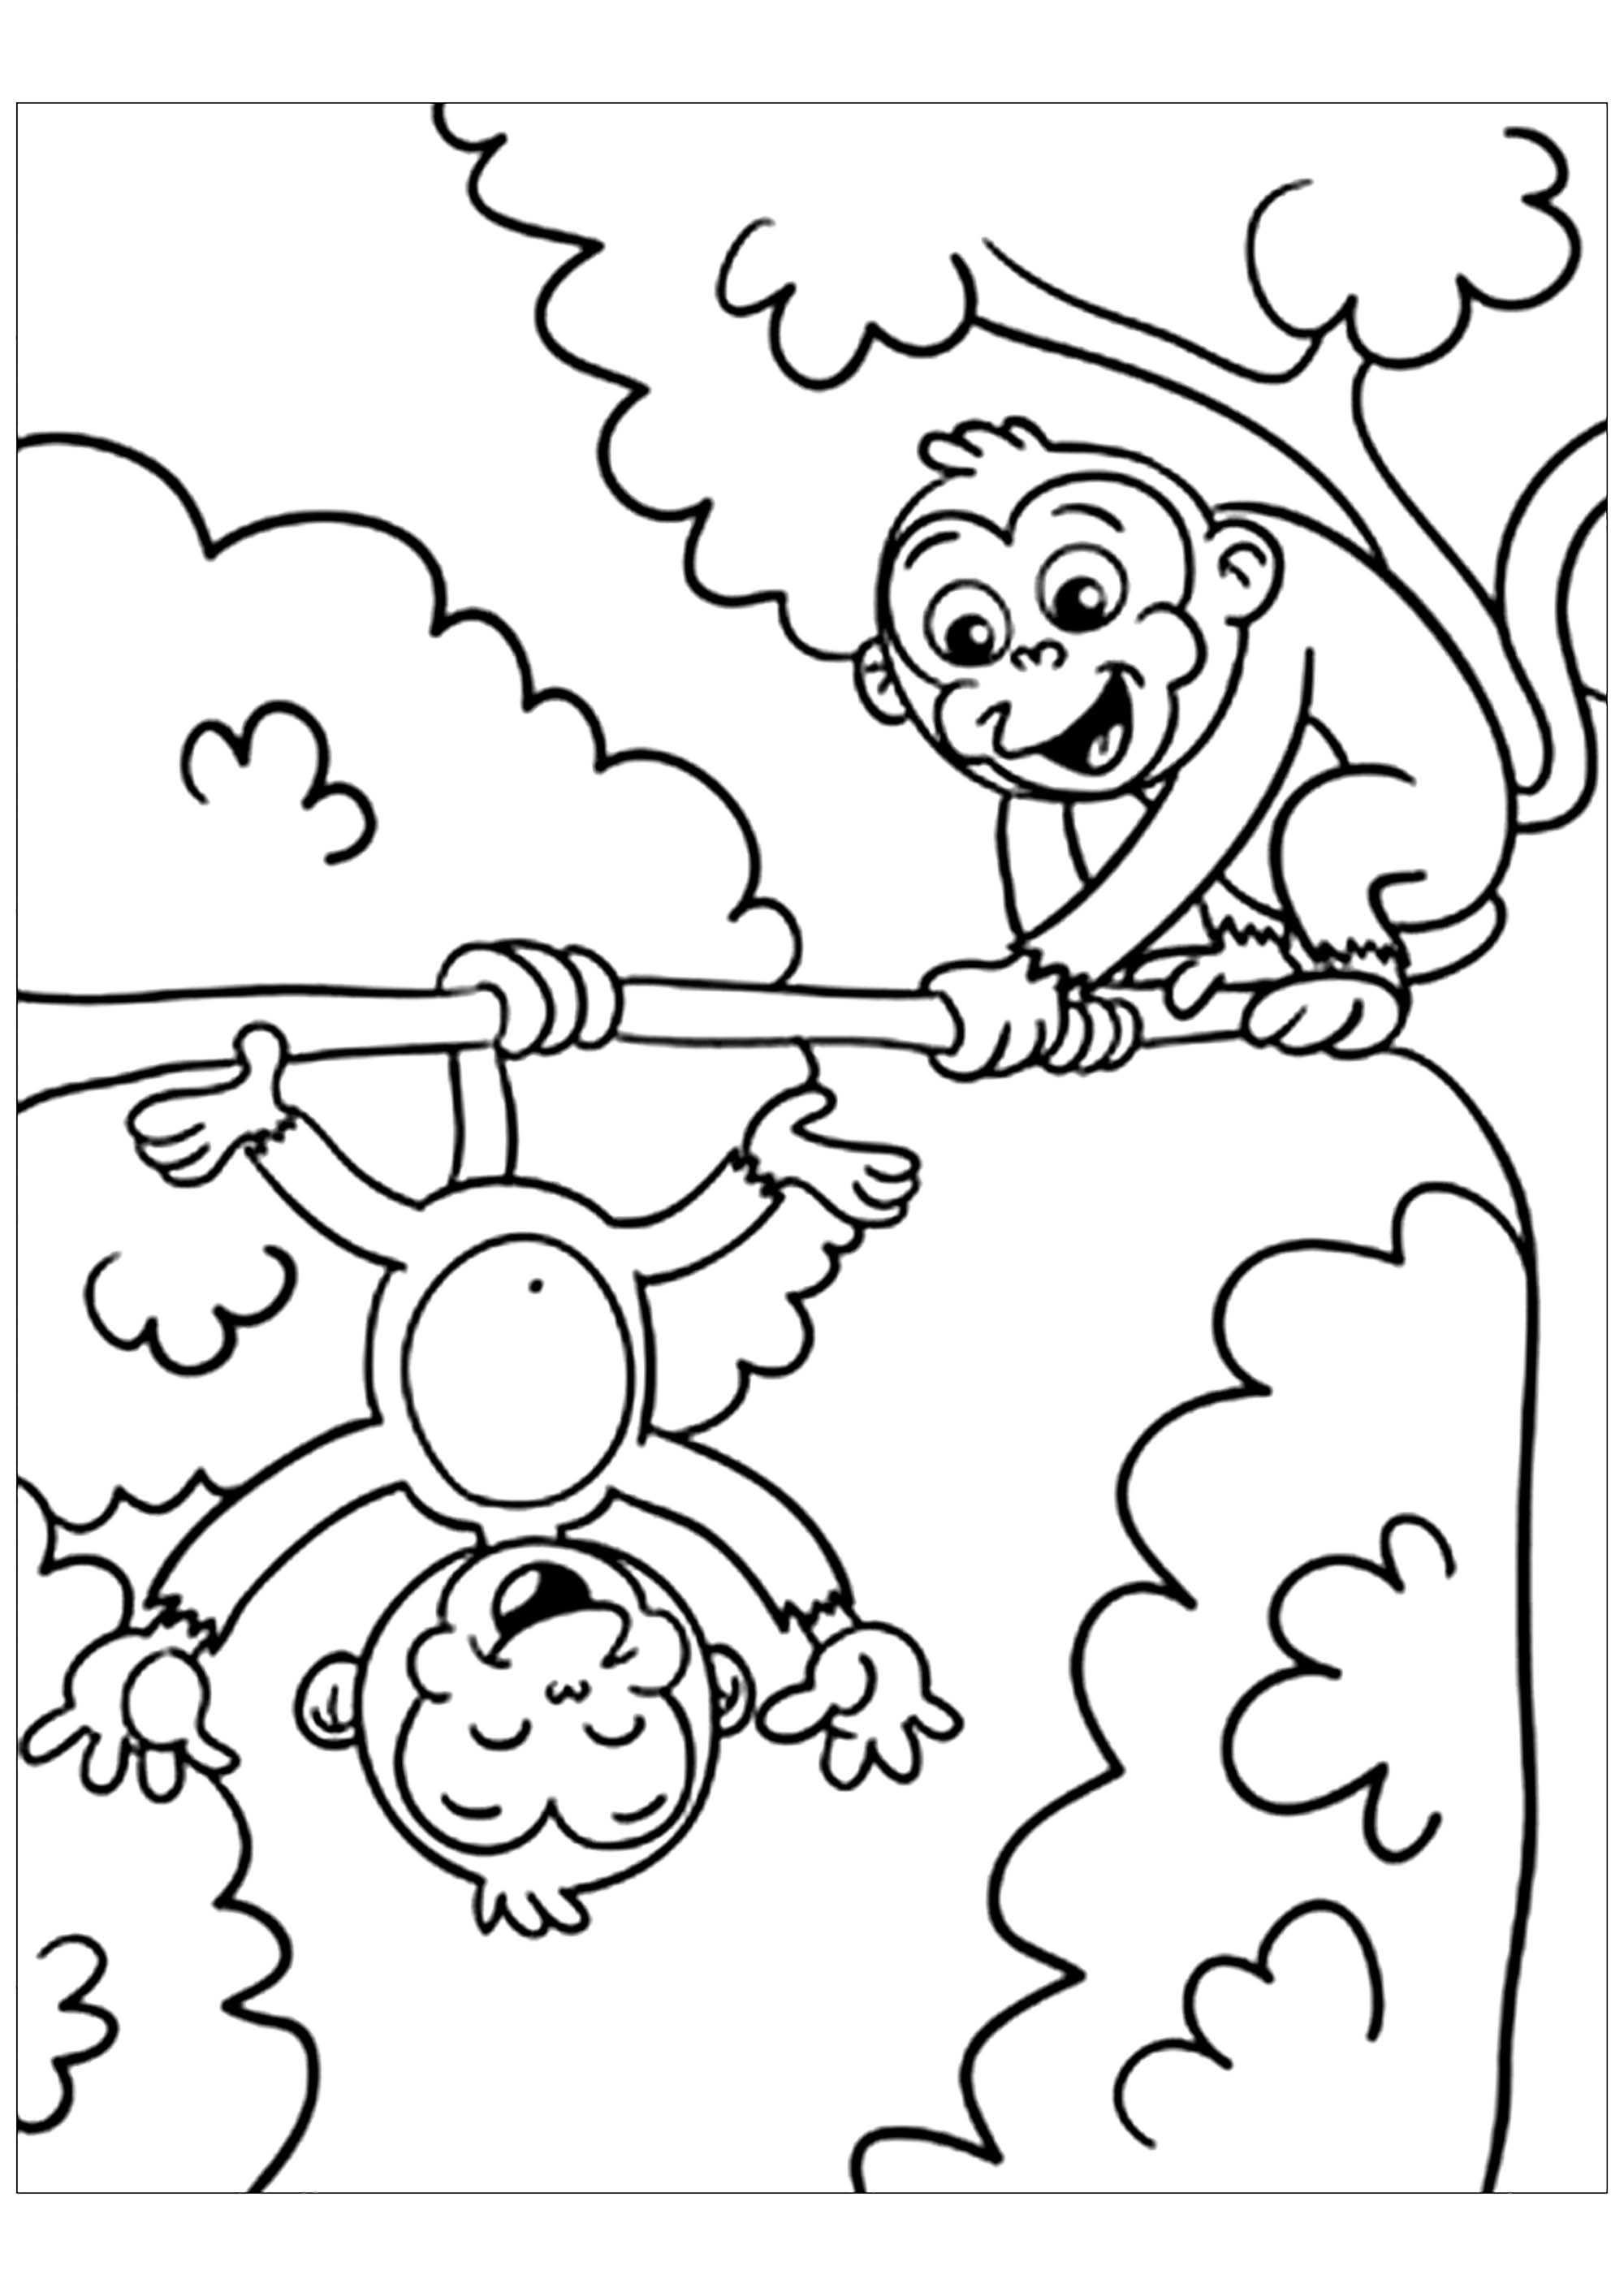 colouring pictures of monkeys monkeys to color for kids monkeys kids coloring pages pictures monkeys of colouring